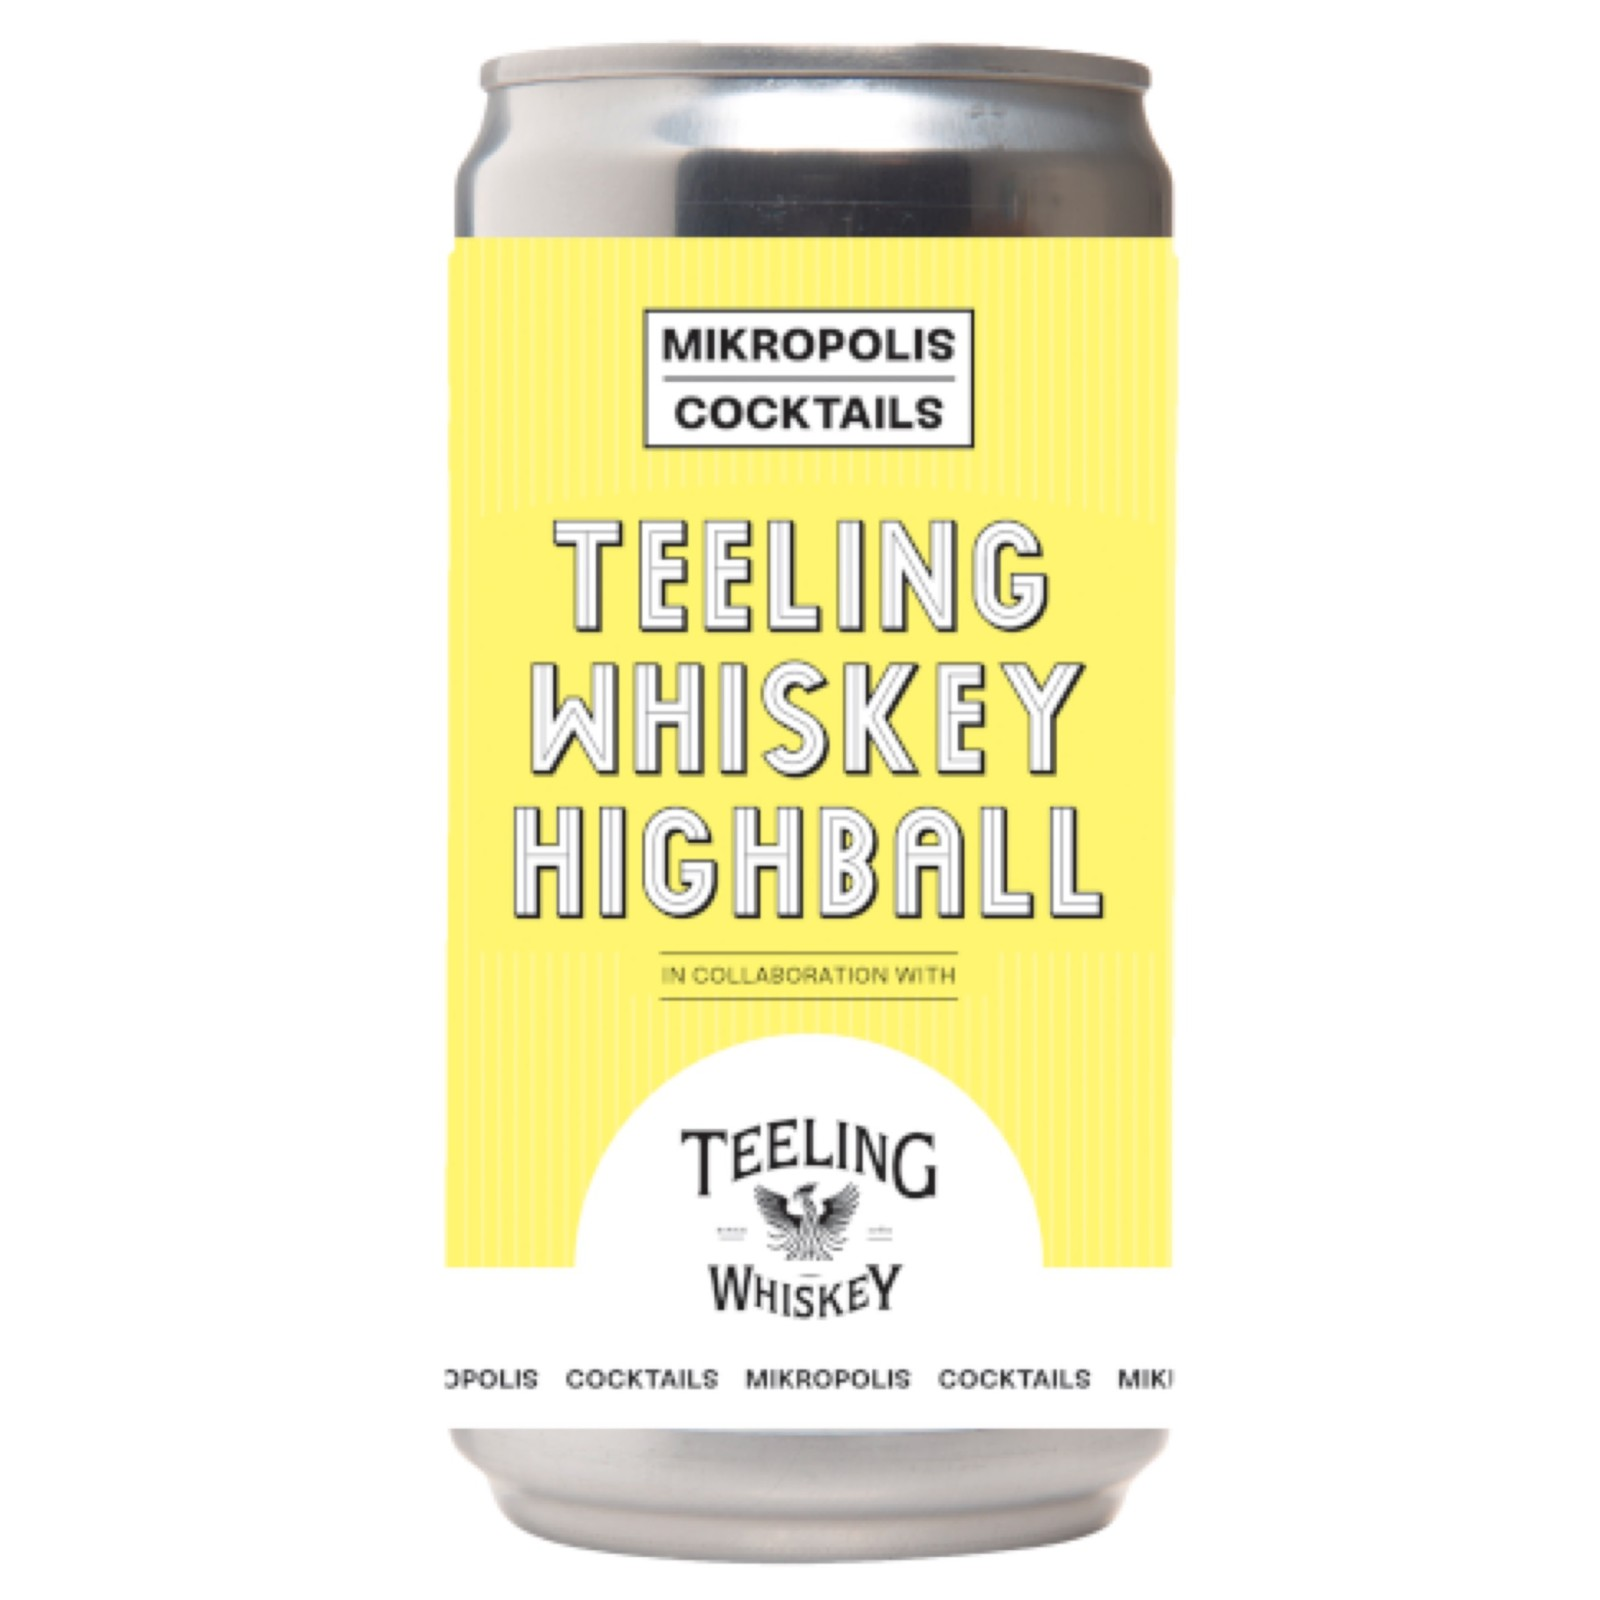 Teeling Whiskey Highball 9.4% 250ml Mikropolis Cocktails